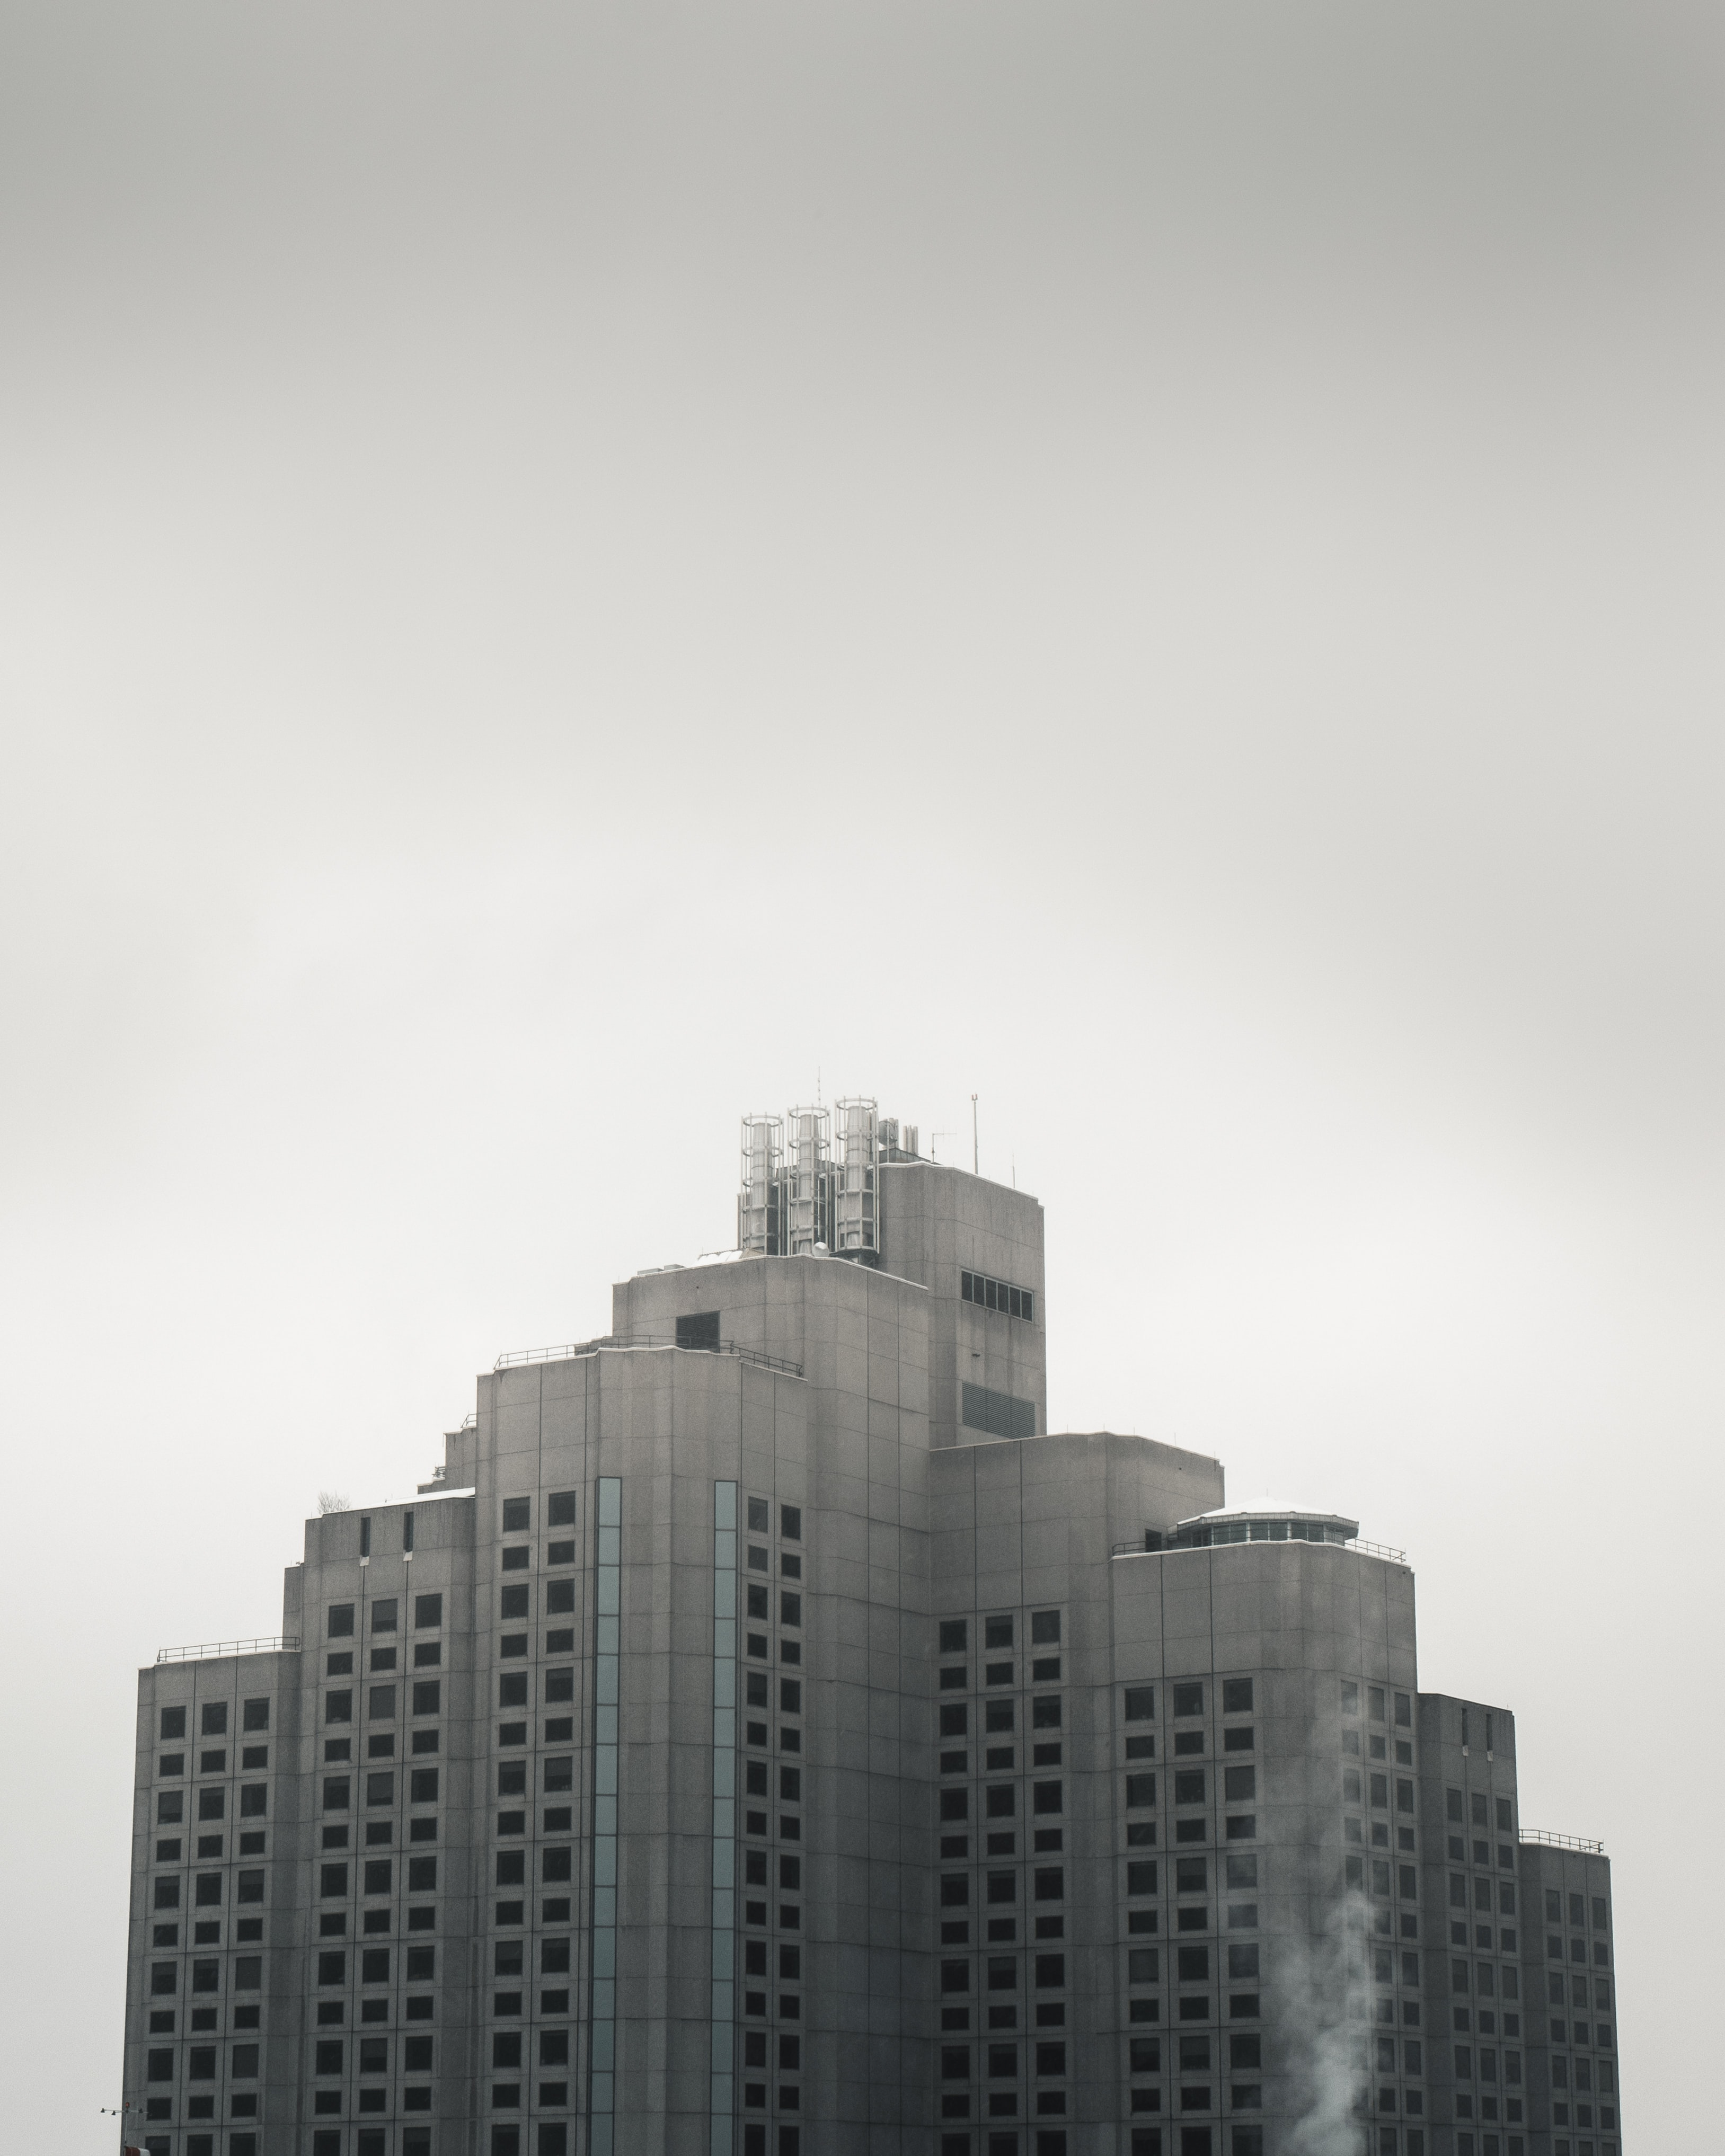 areal photo of white and gray concrete building